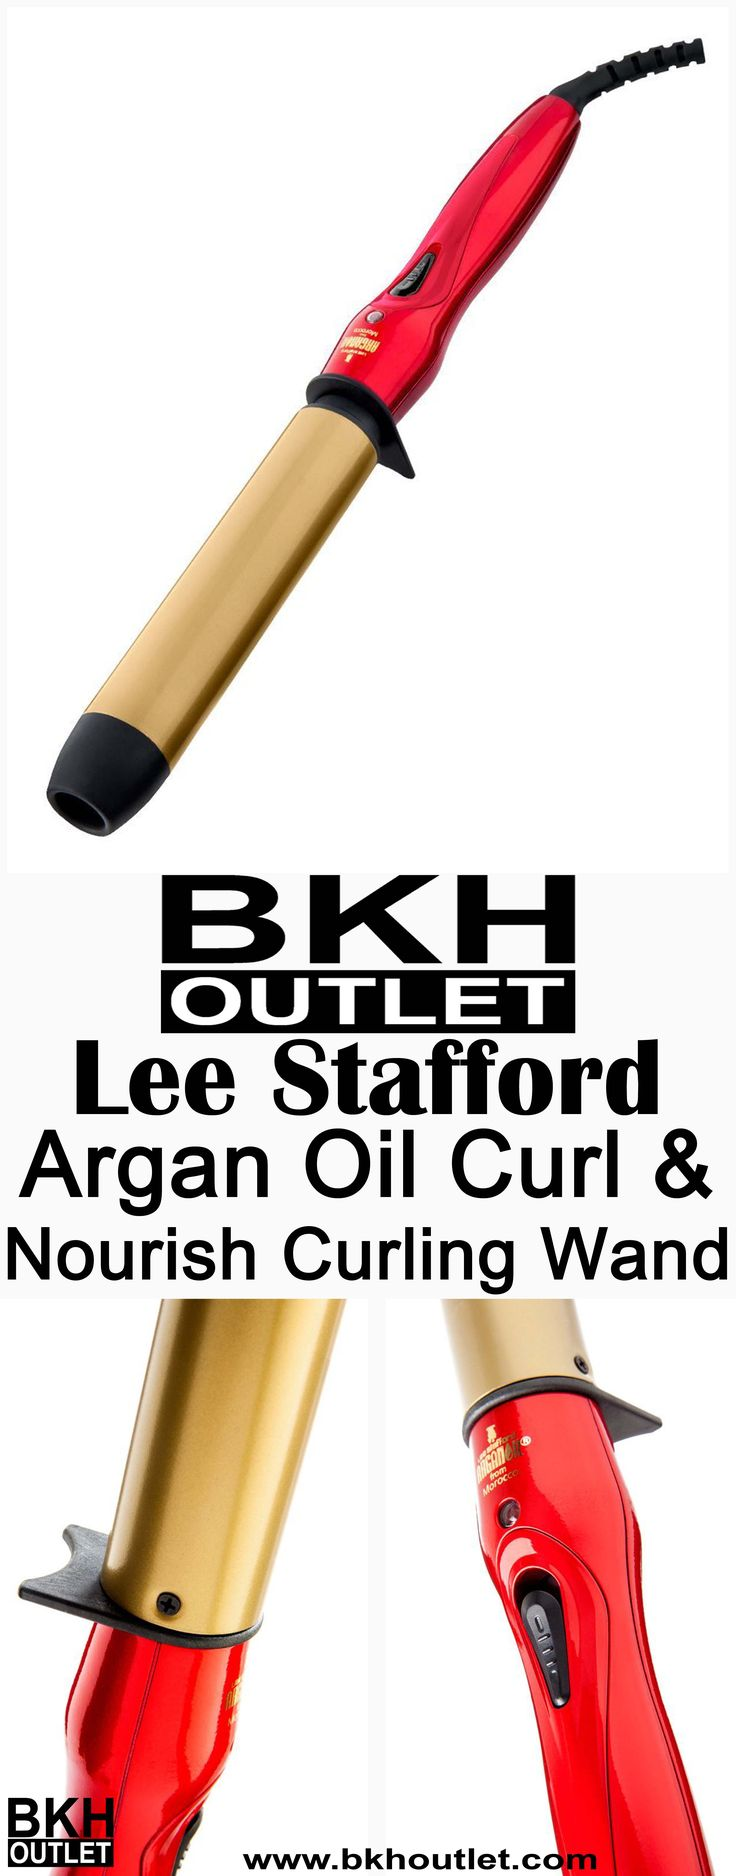 Salon Quality Curls Without The Wait Get stunning curls in no time with the Lee Stafford Argan Oil Curling Wand! A sophisticated super fast heat up system allows the wand to reach 200C in just 30 seconds. No more waiting around to get those head... │skin care │beauty tips │skin care products │beauty products │beauty tips │hair care #skincare #beautytips #skincareproducts #beautyproducts #beautytips #haircare